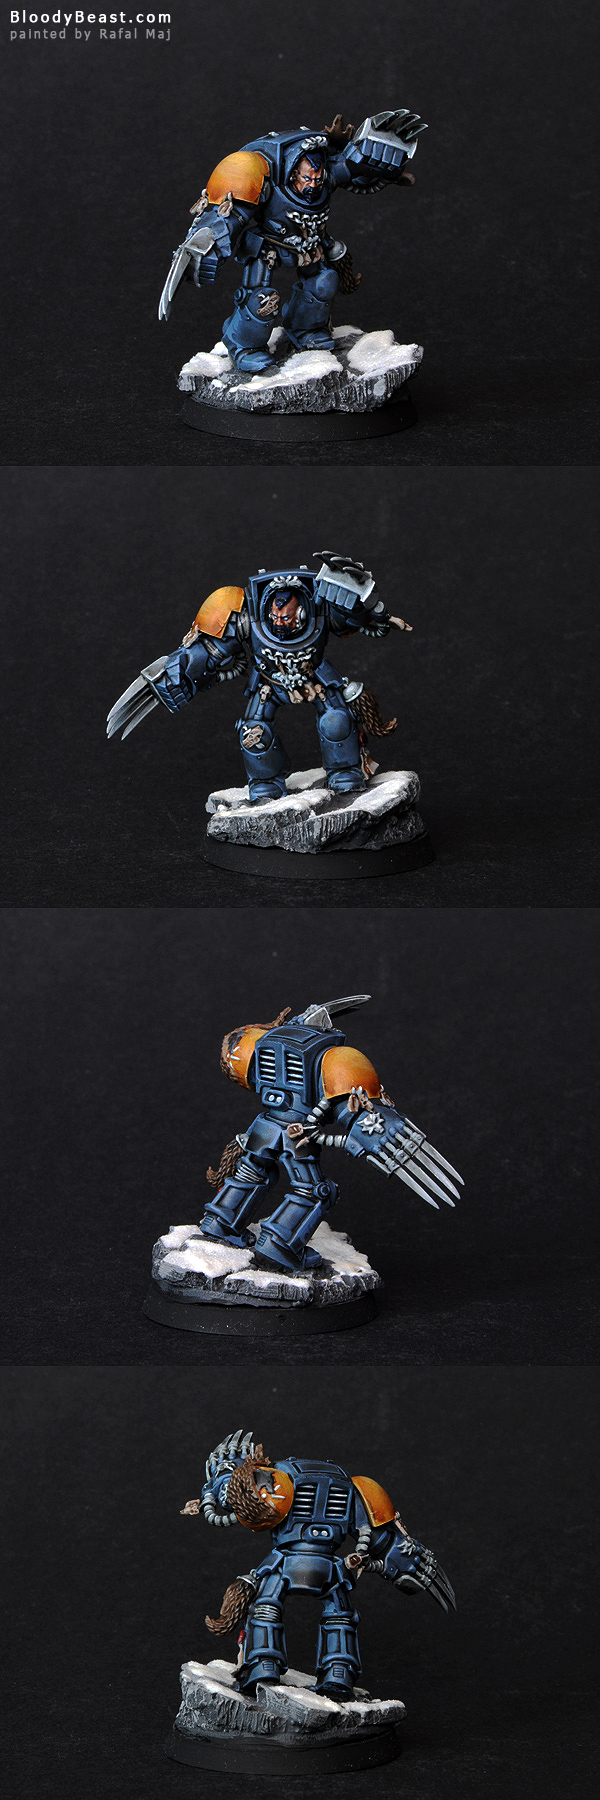 Space Wolves Guard with Wolf Claws painted by Rafal Maj (BloodyBeast.com)